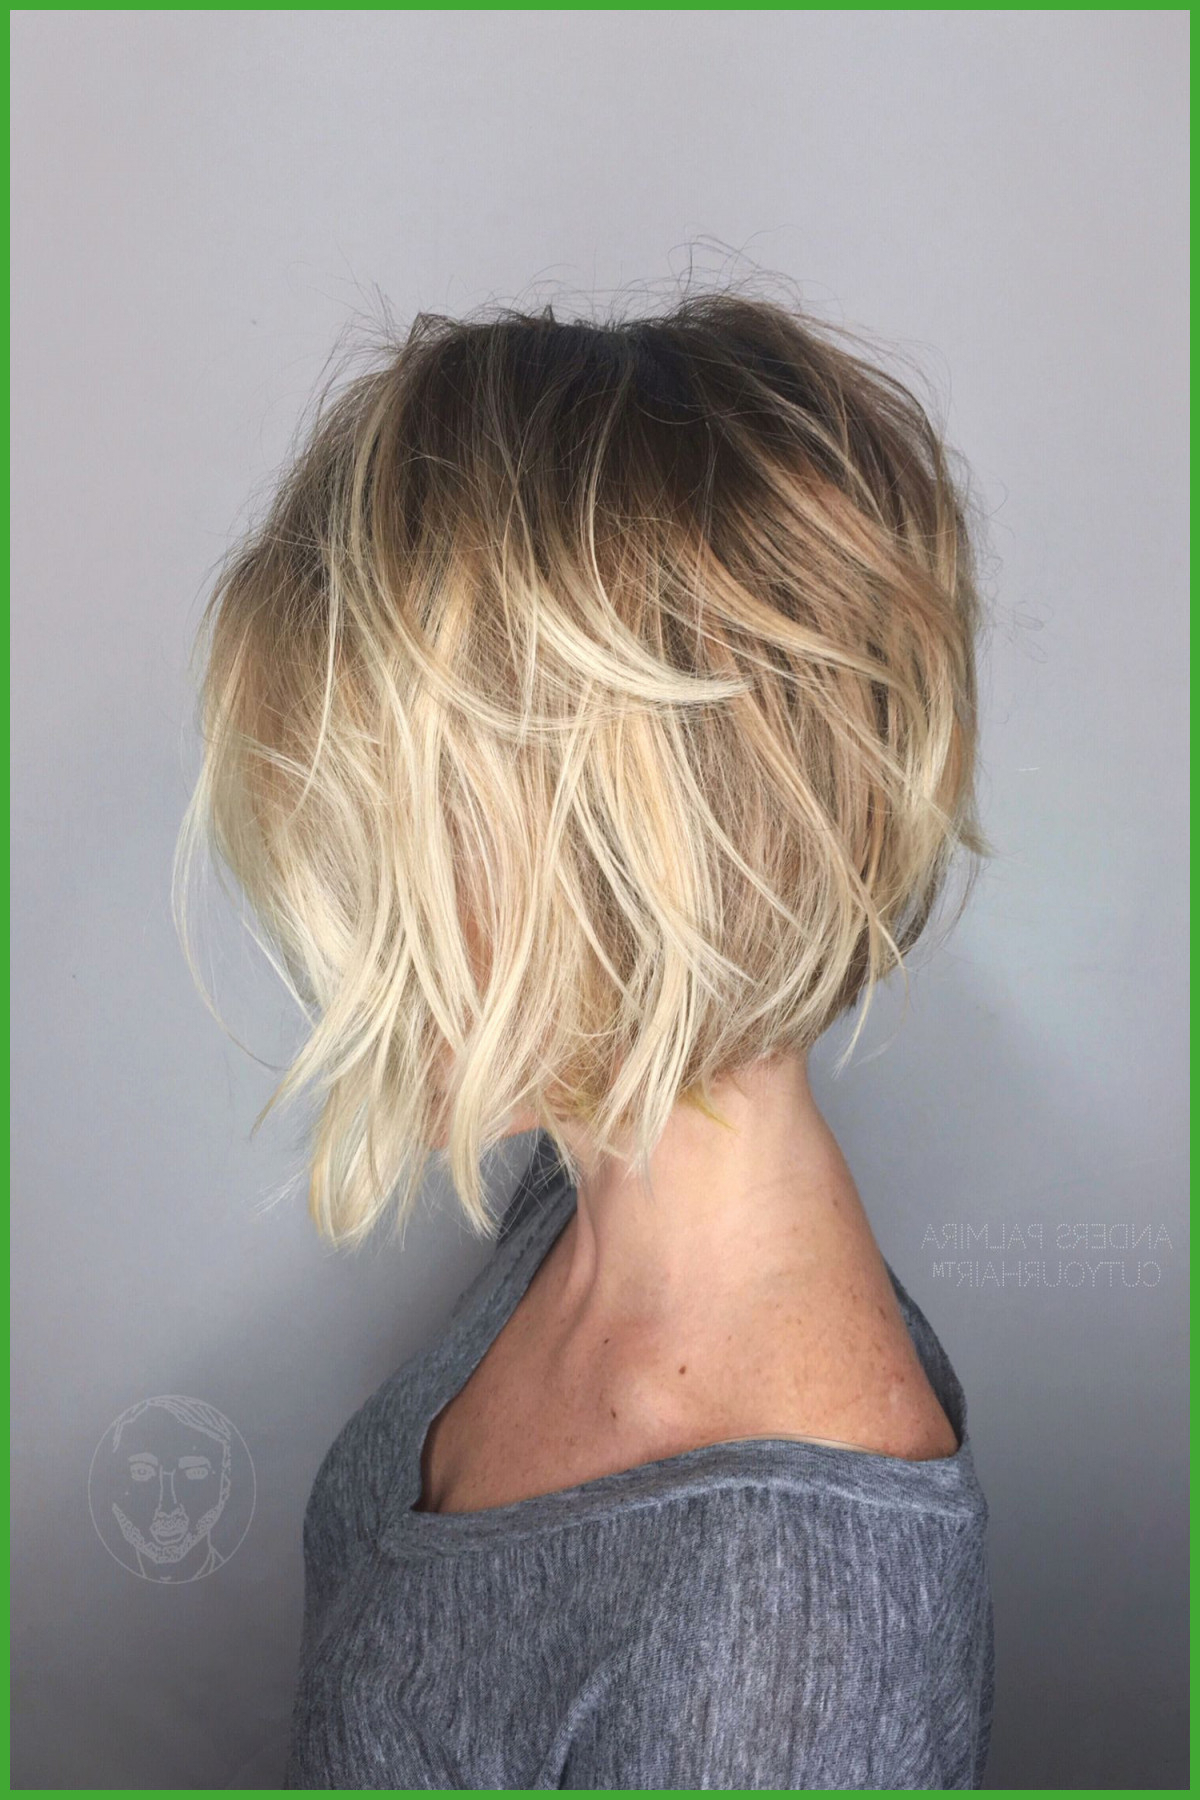 Drew Barrymore Short Hairstyles Fresh 20 Awesome Layered Haircut With Regard To Drew Barrymore Short Haircuts (Gallery 23 of 25)